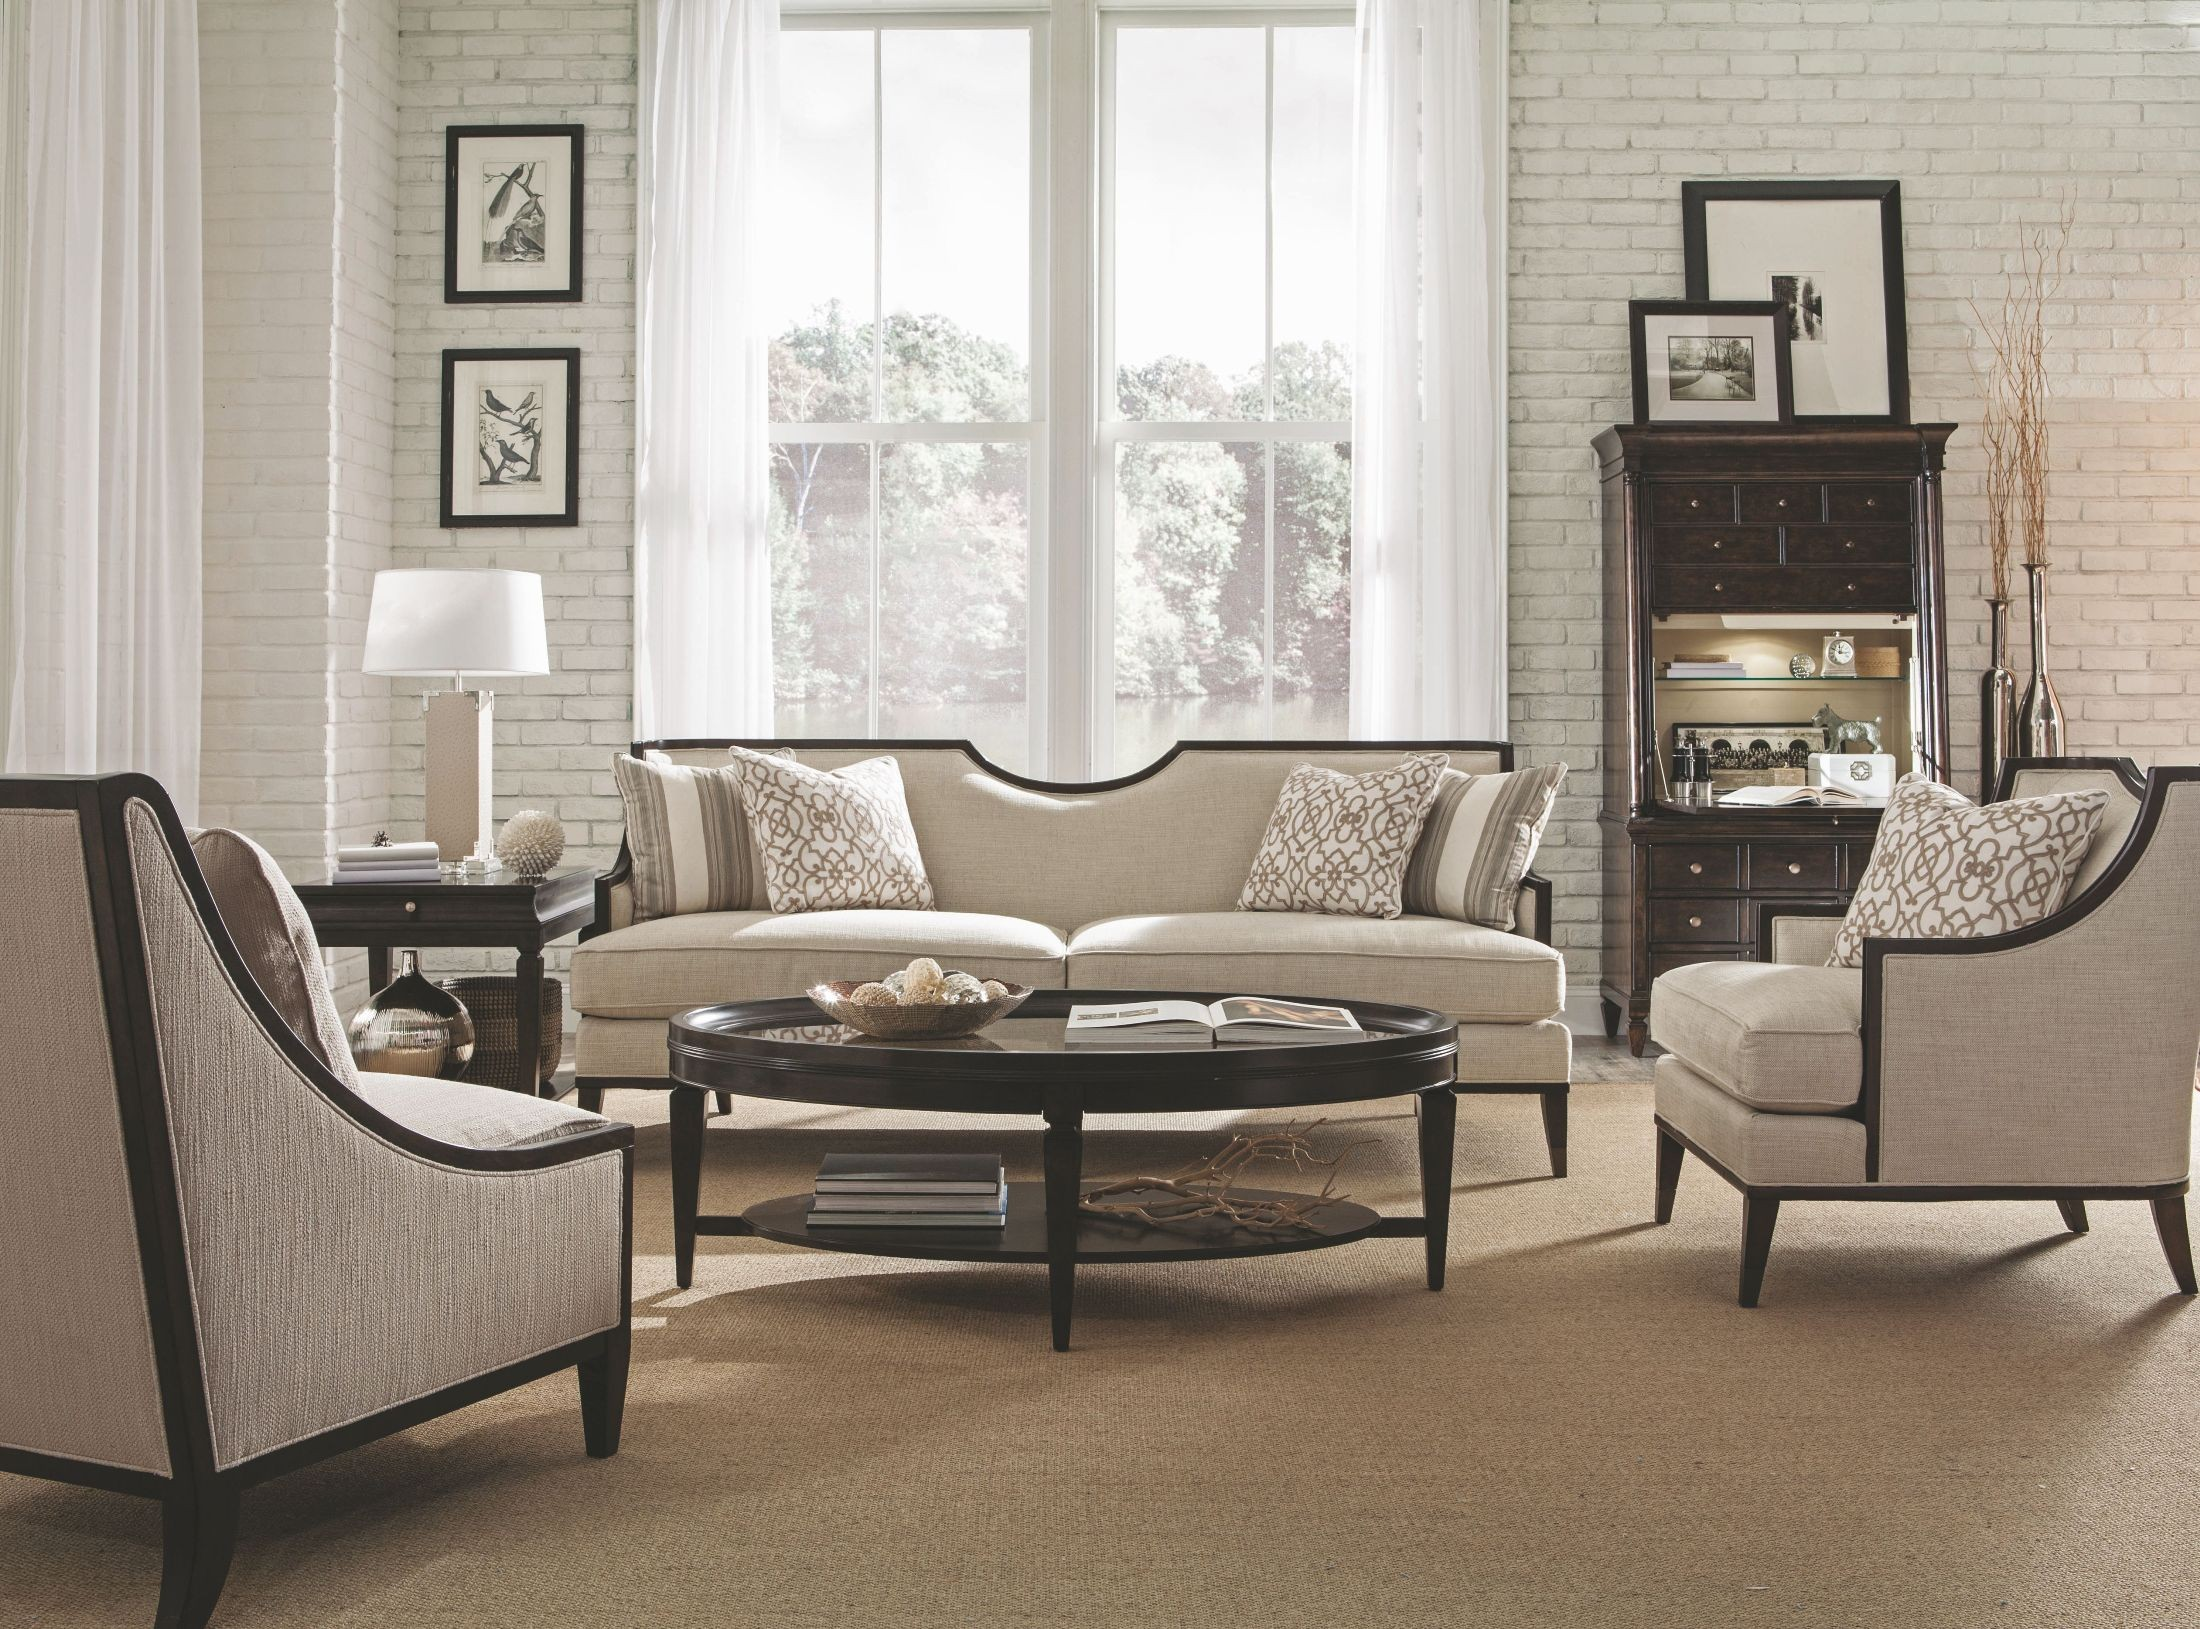 Harper Ivory Living Room Set From ART